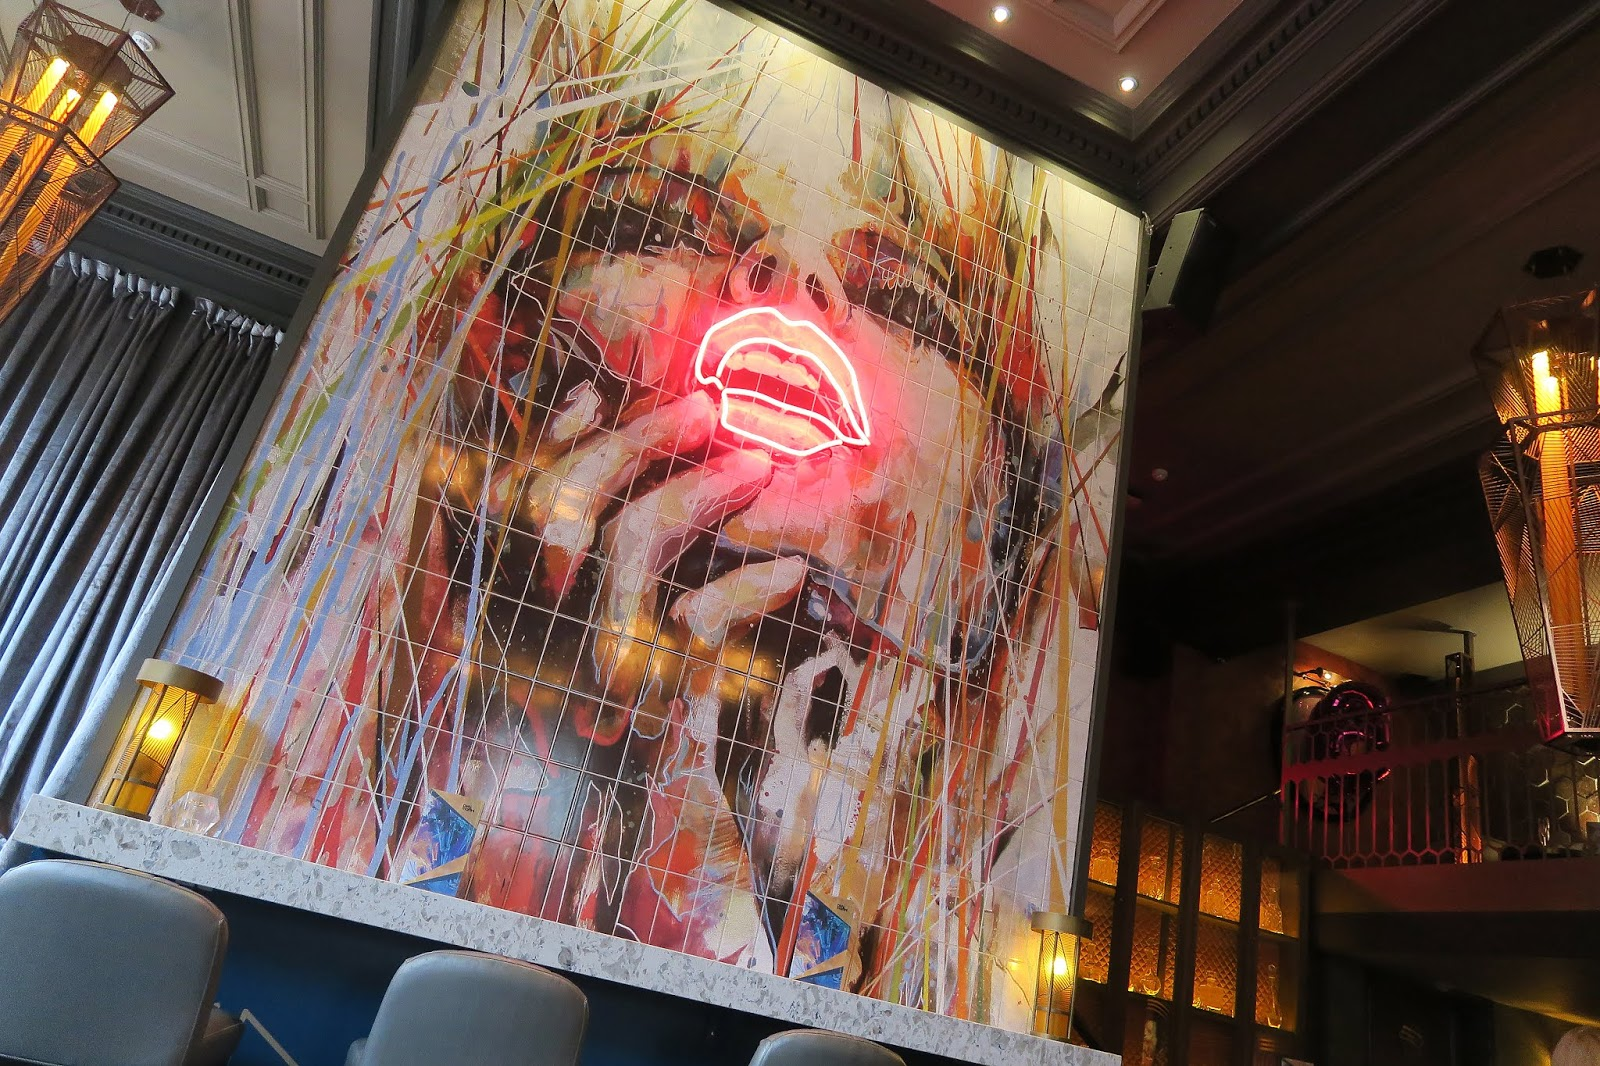 HUGE MURAL OF A WOMAN INSIDE DIRTY MARTINI BIRMINGHAM. THE WOMANS LIPS ARE LIT UP WITH A NEON LIGHT